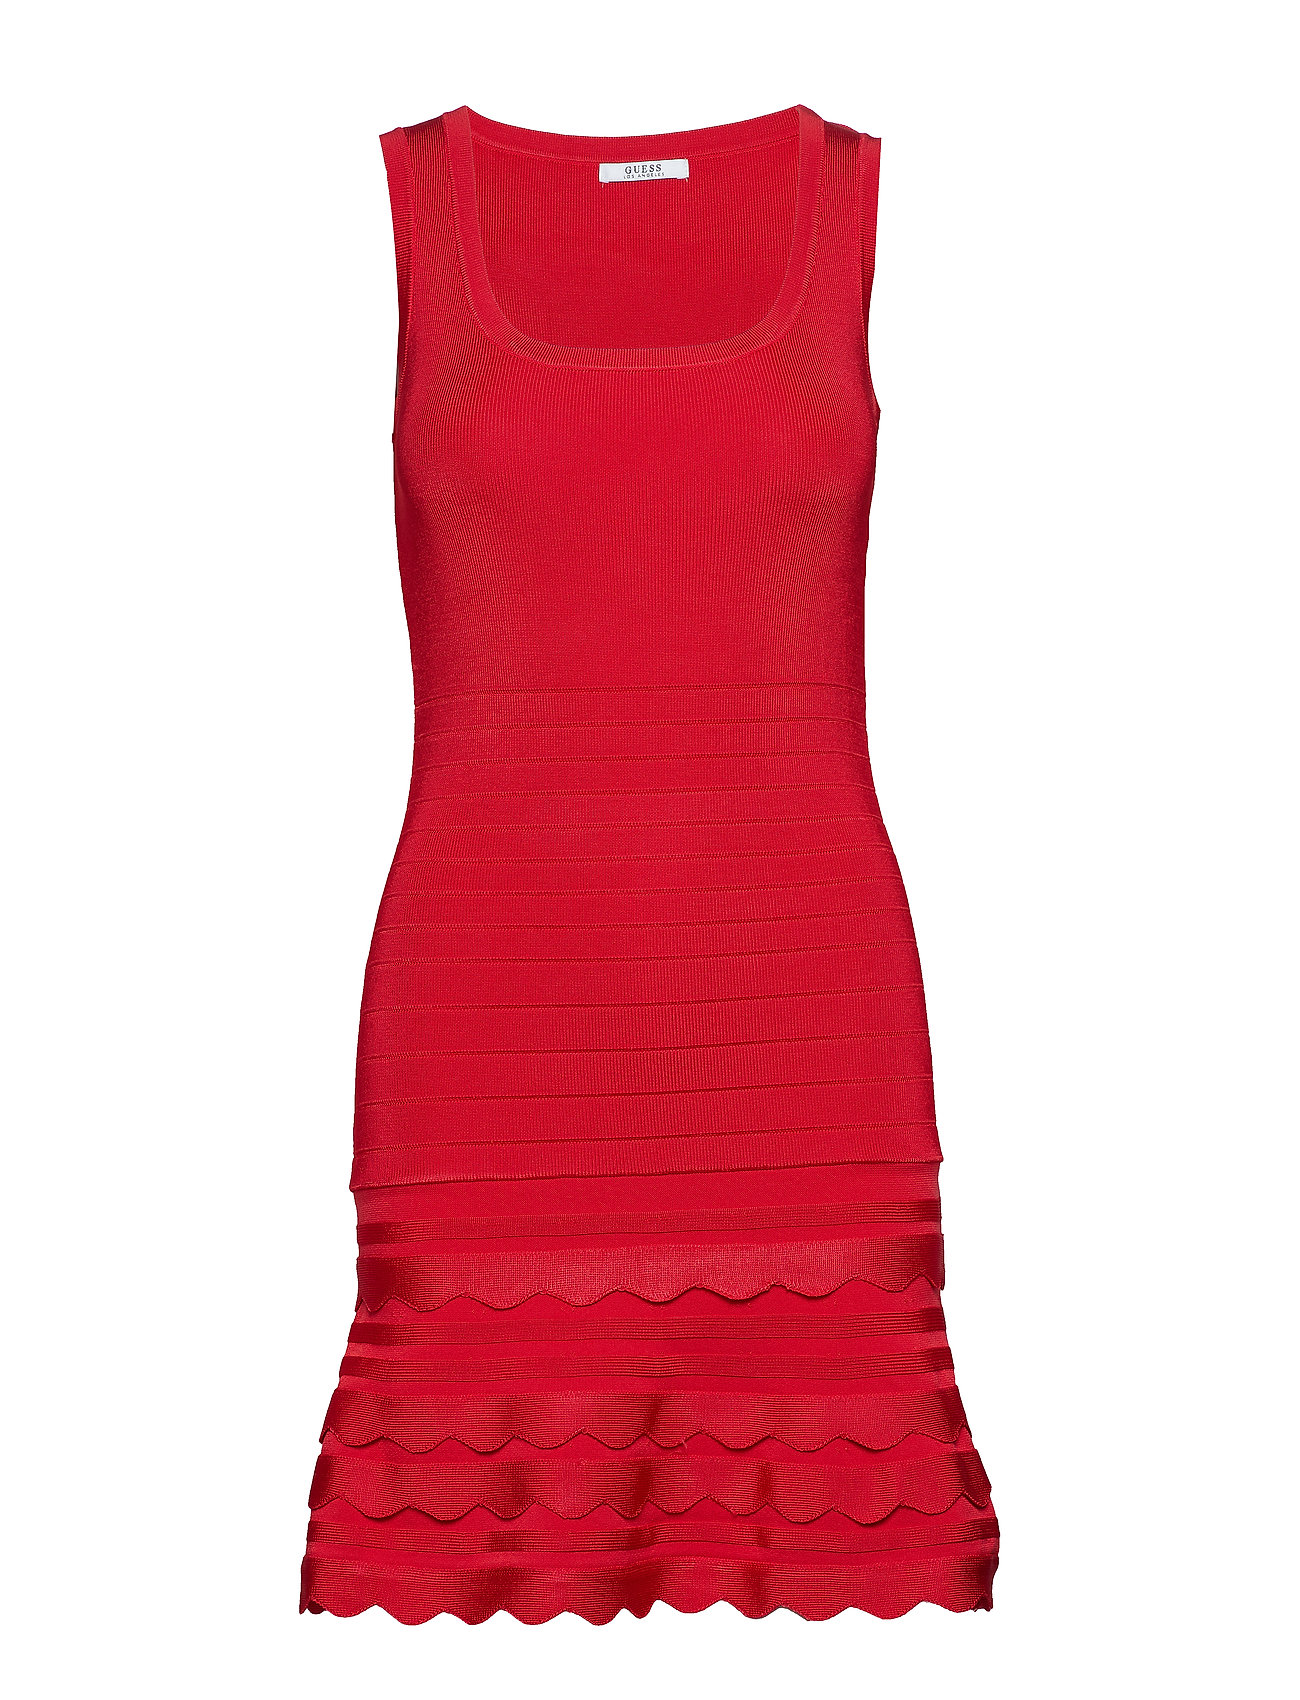 fd2764d1 Antoinette Sweater Dress (Necessary Red) (1049.30 kr) - GUESS Jeans ...